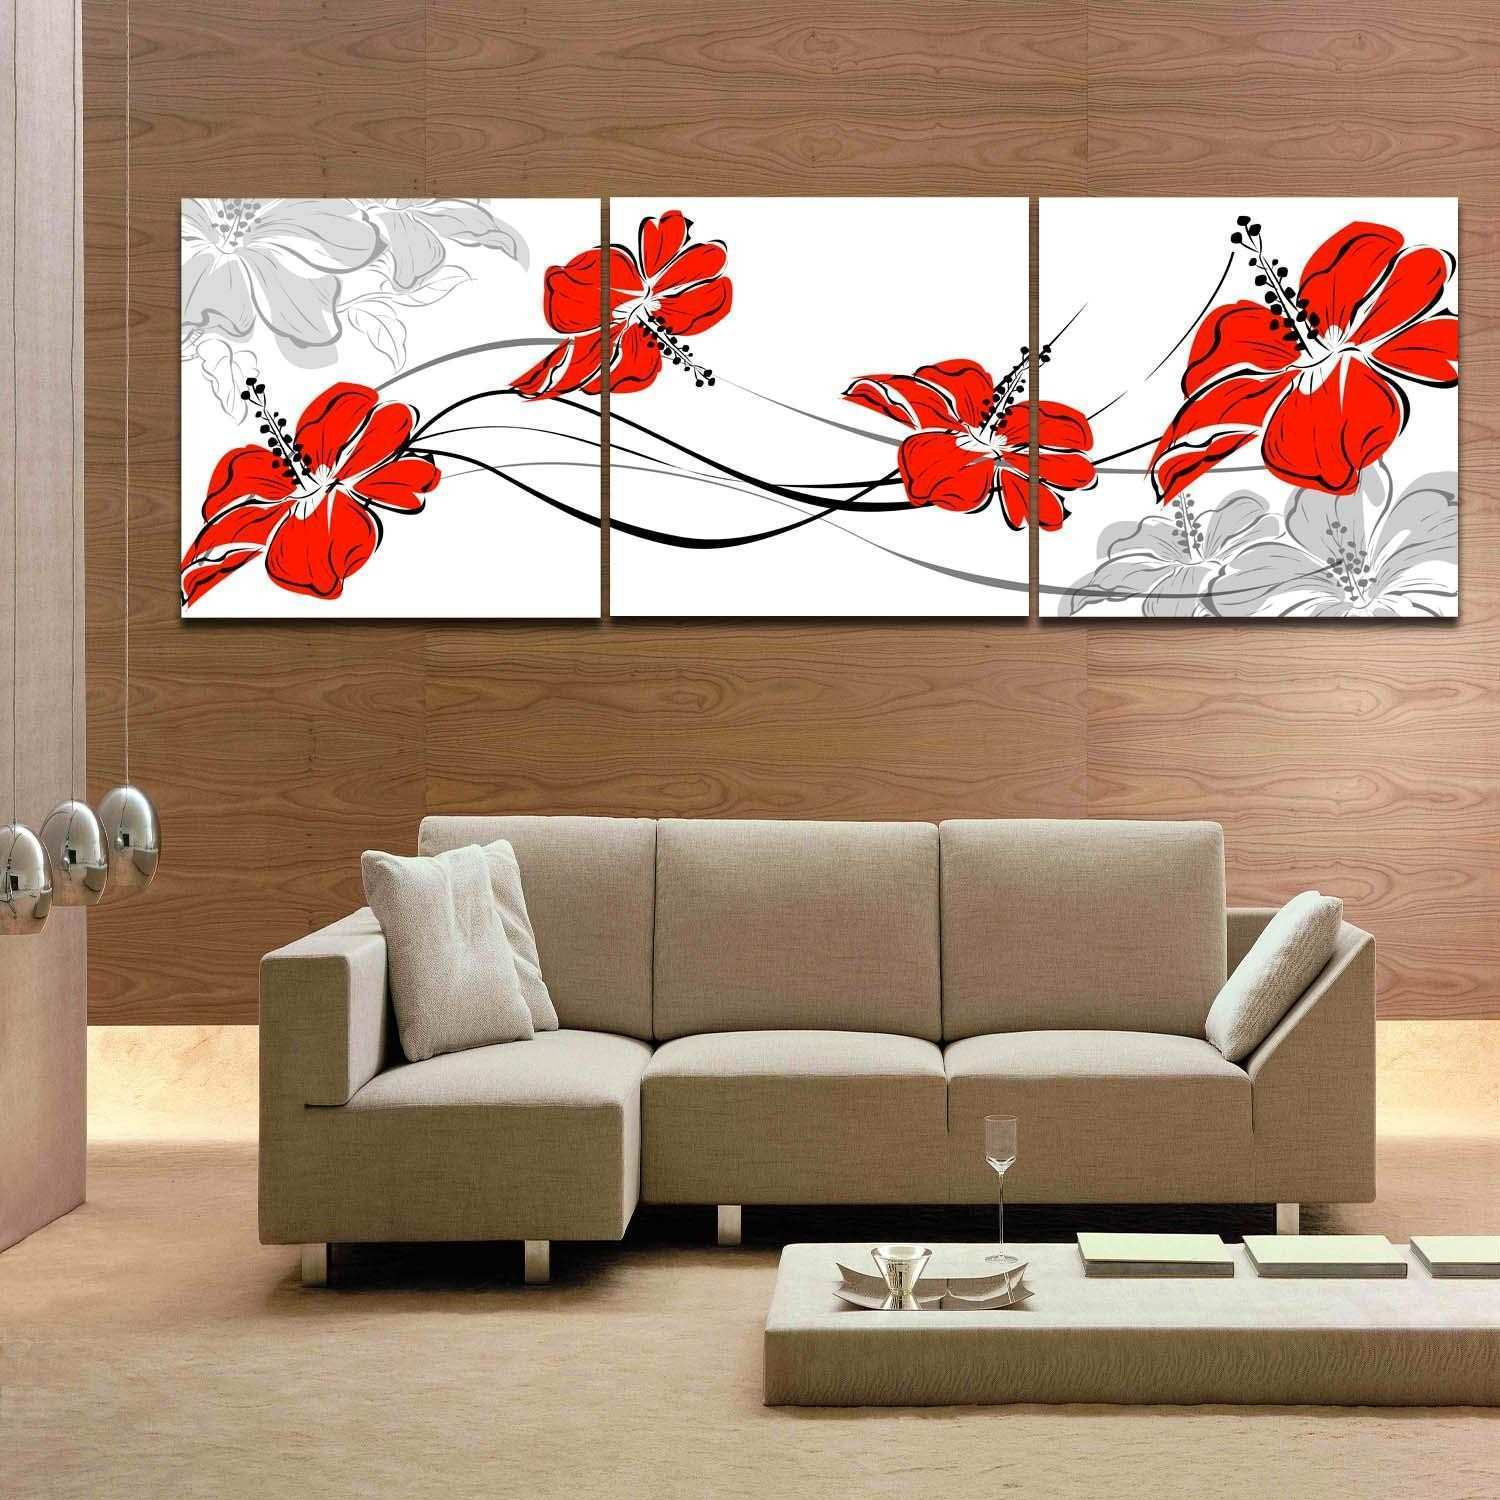 Pink Blooming Flower Red Flower 3 Panels Beautiful Canvas Art